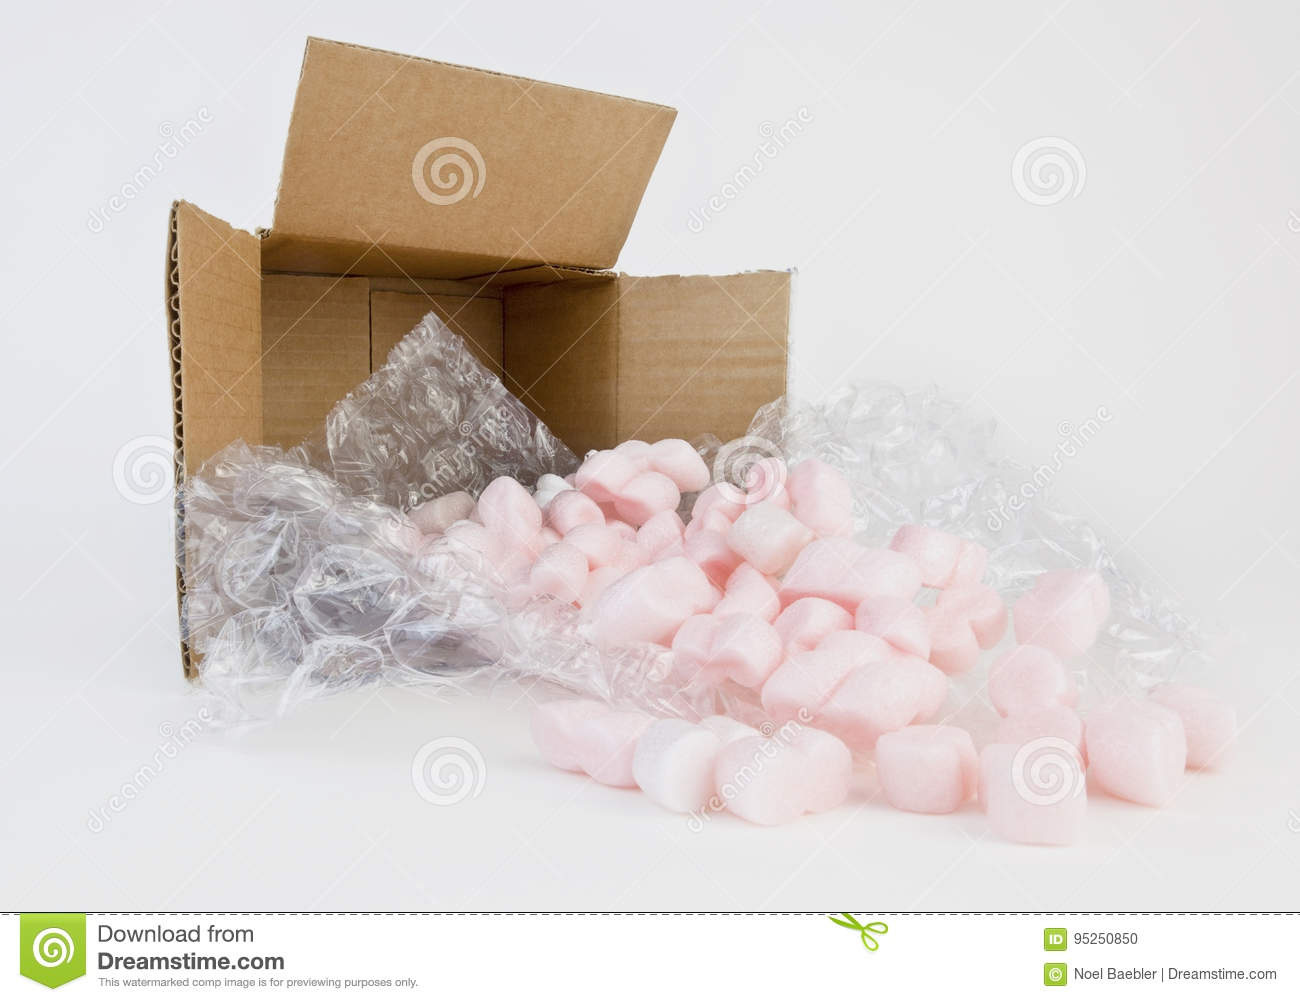 Packaging Pillows and Peanuts